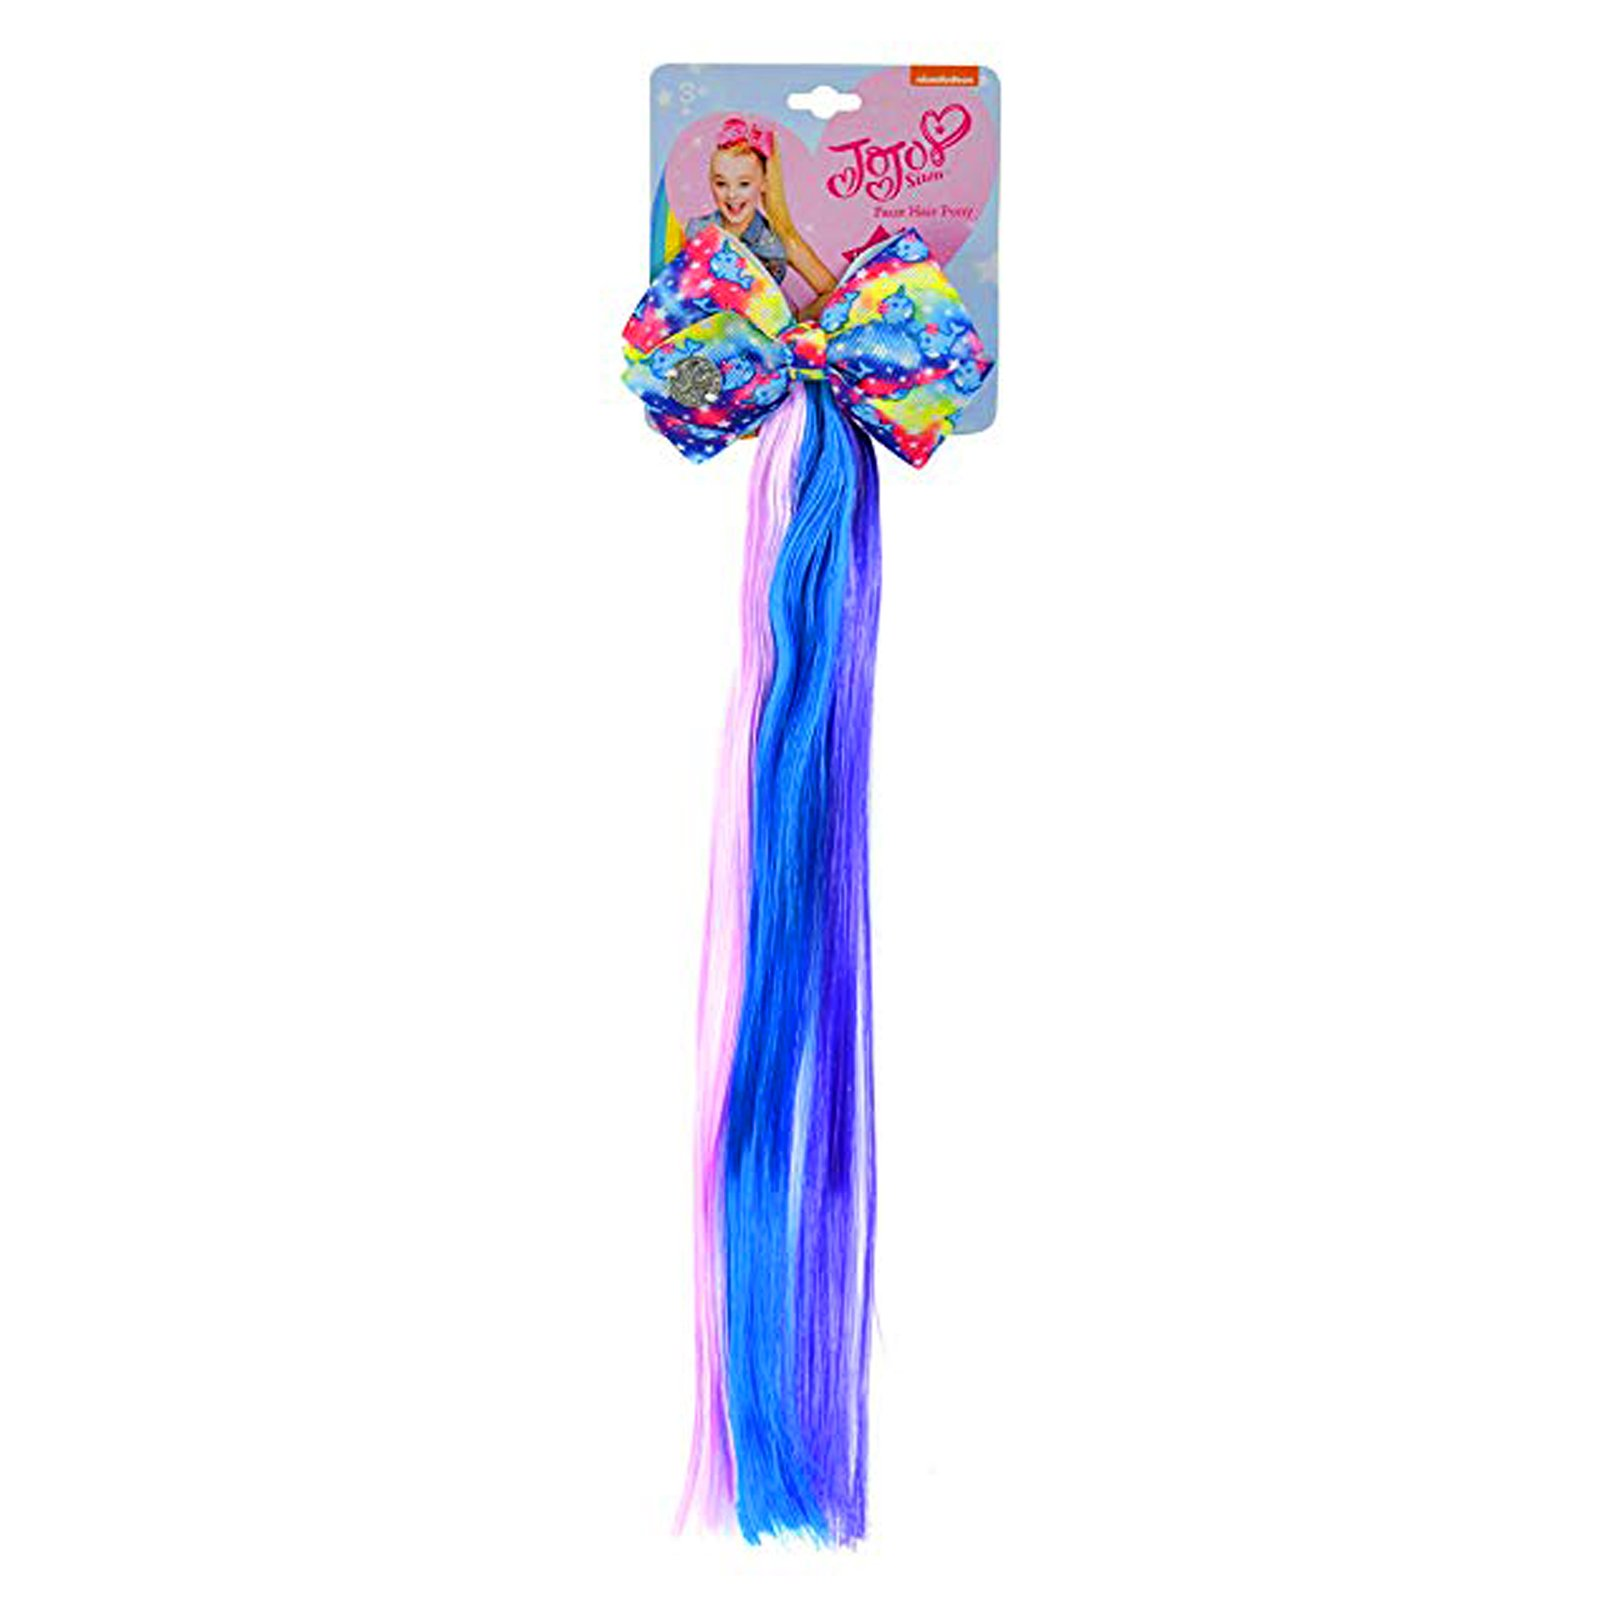 JoJo Siwa Girls Faux Hair Pony Extension with Hair Bow Clip - Ombre Blue Purple